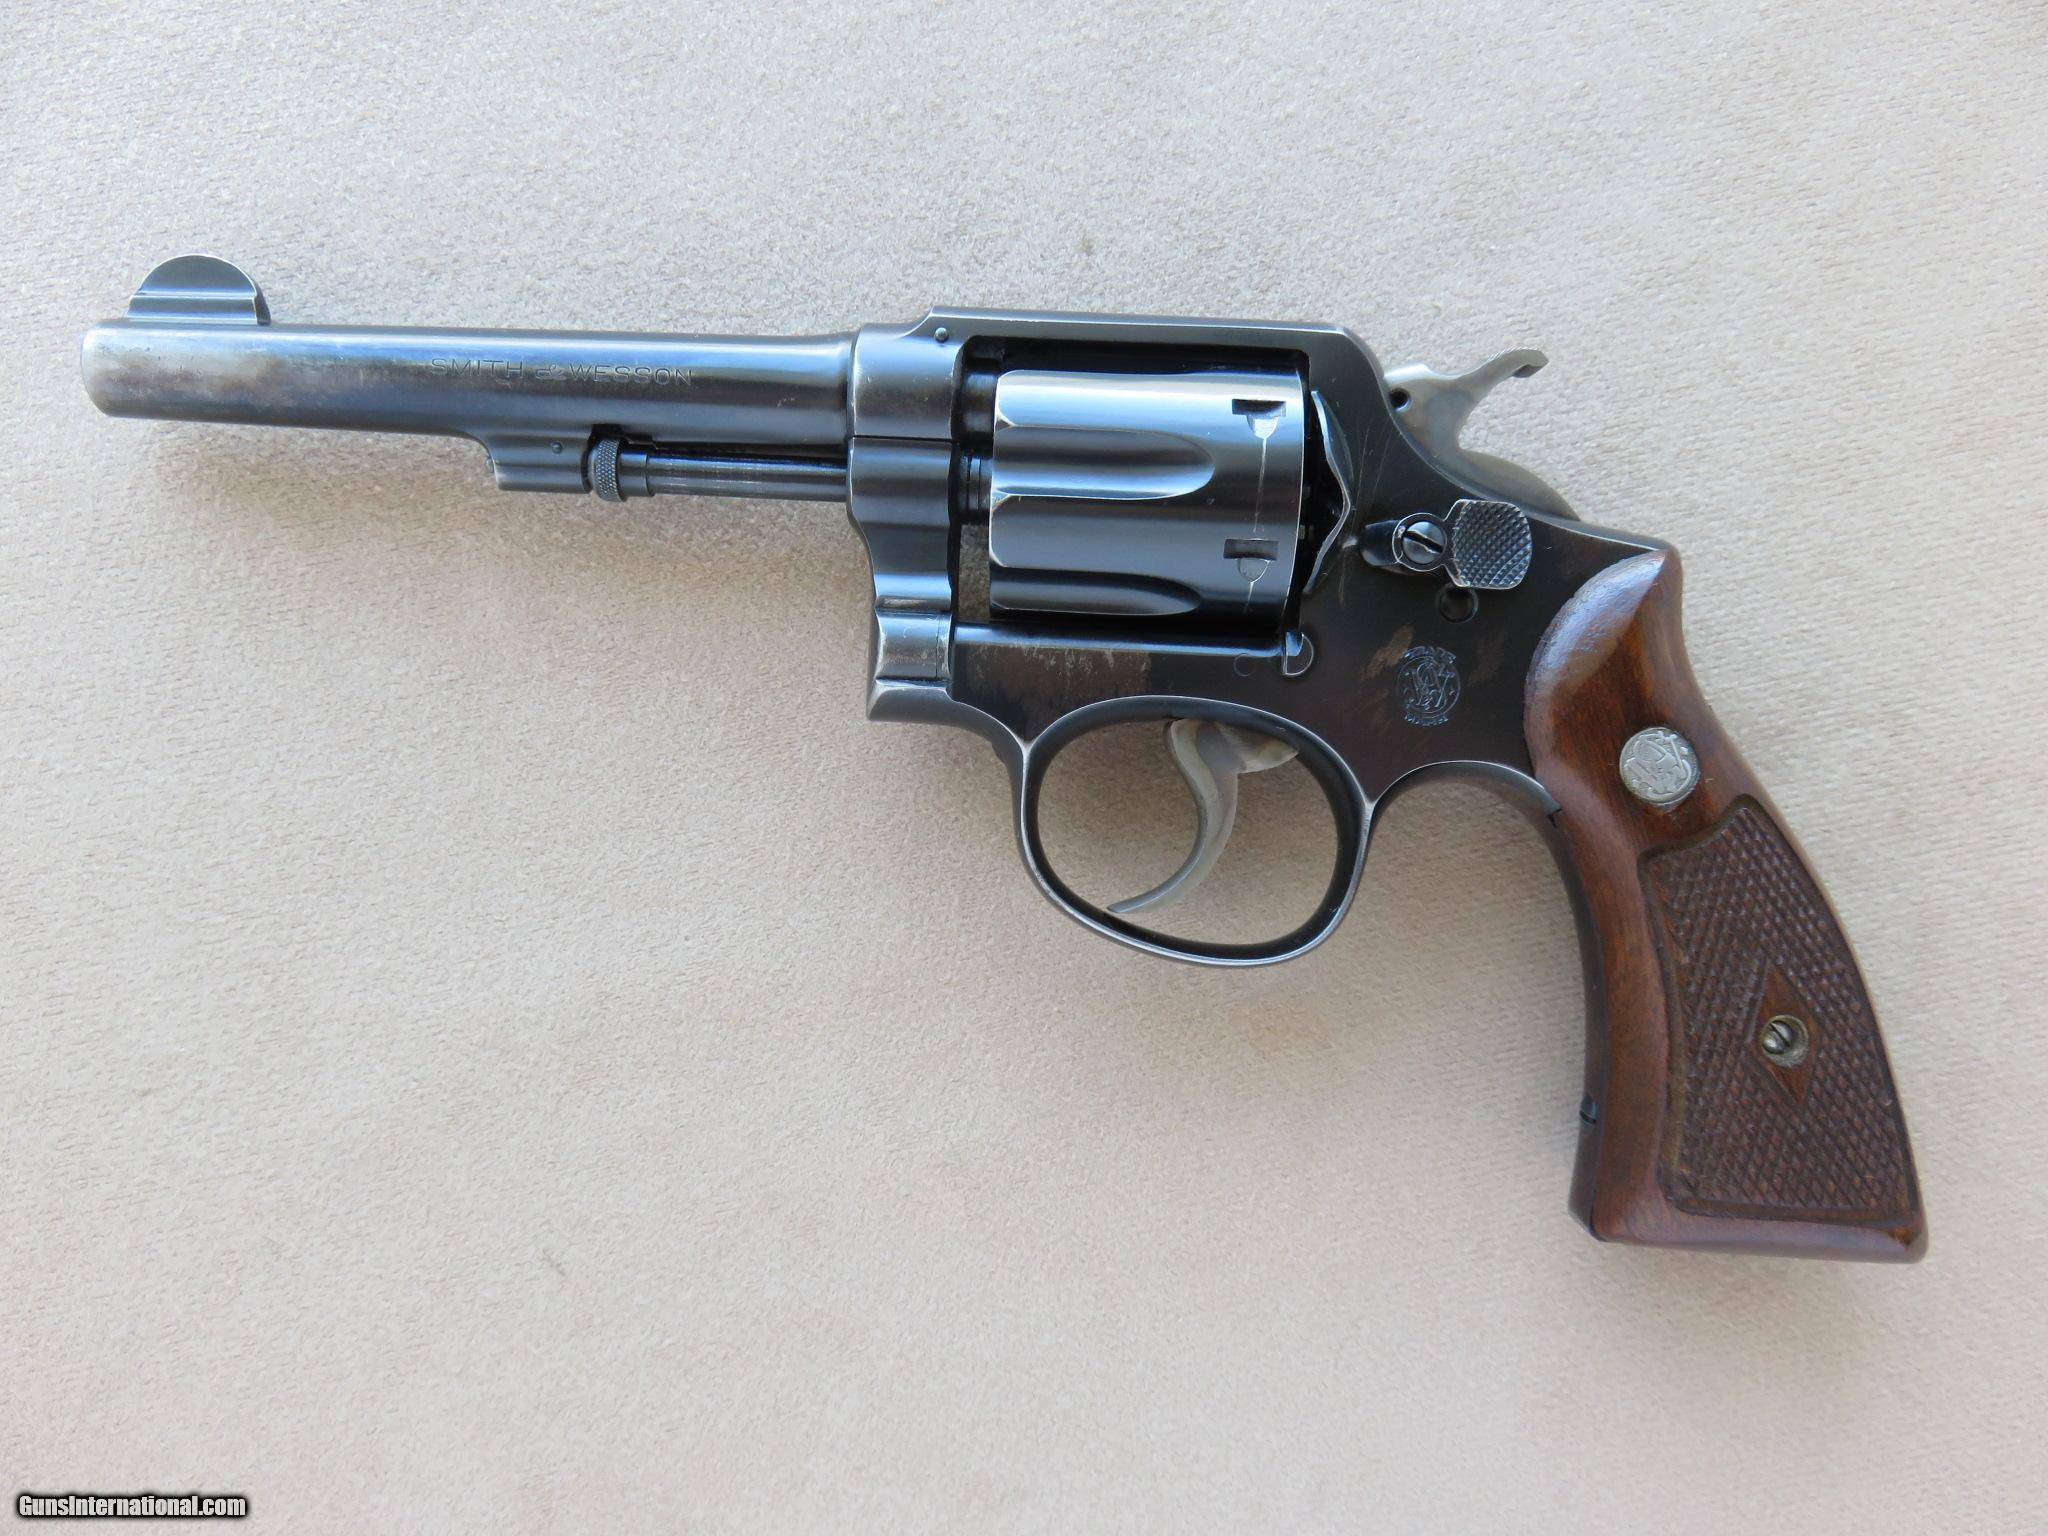 Pre-War Smith & Wesson M&P .38 Special Revolver